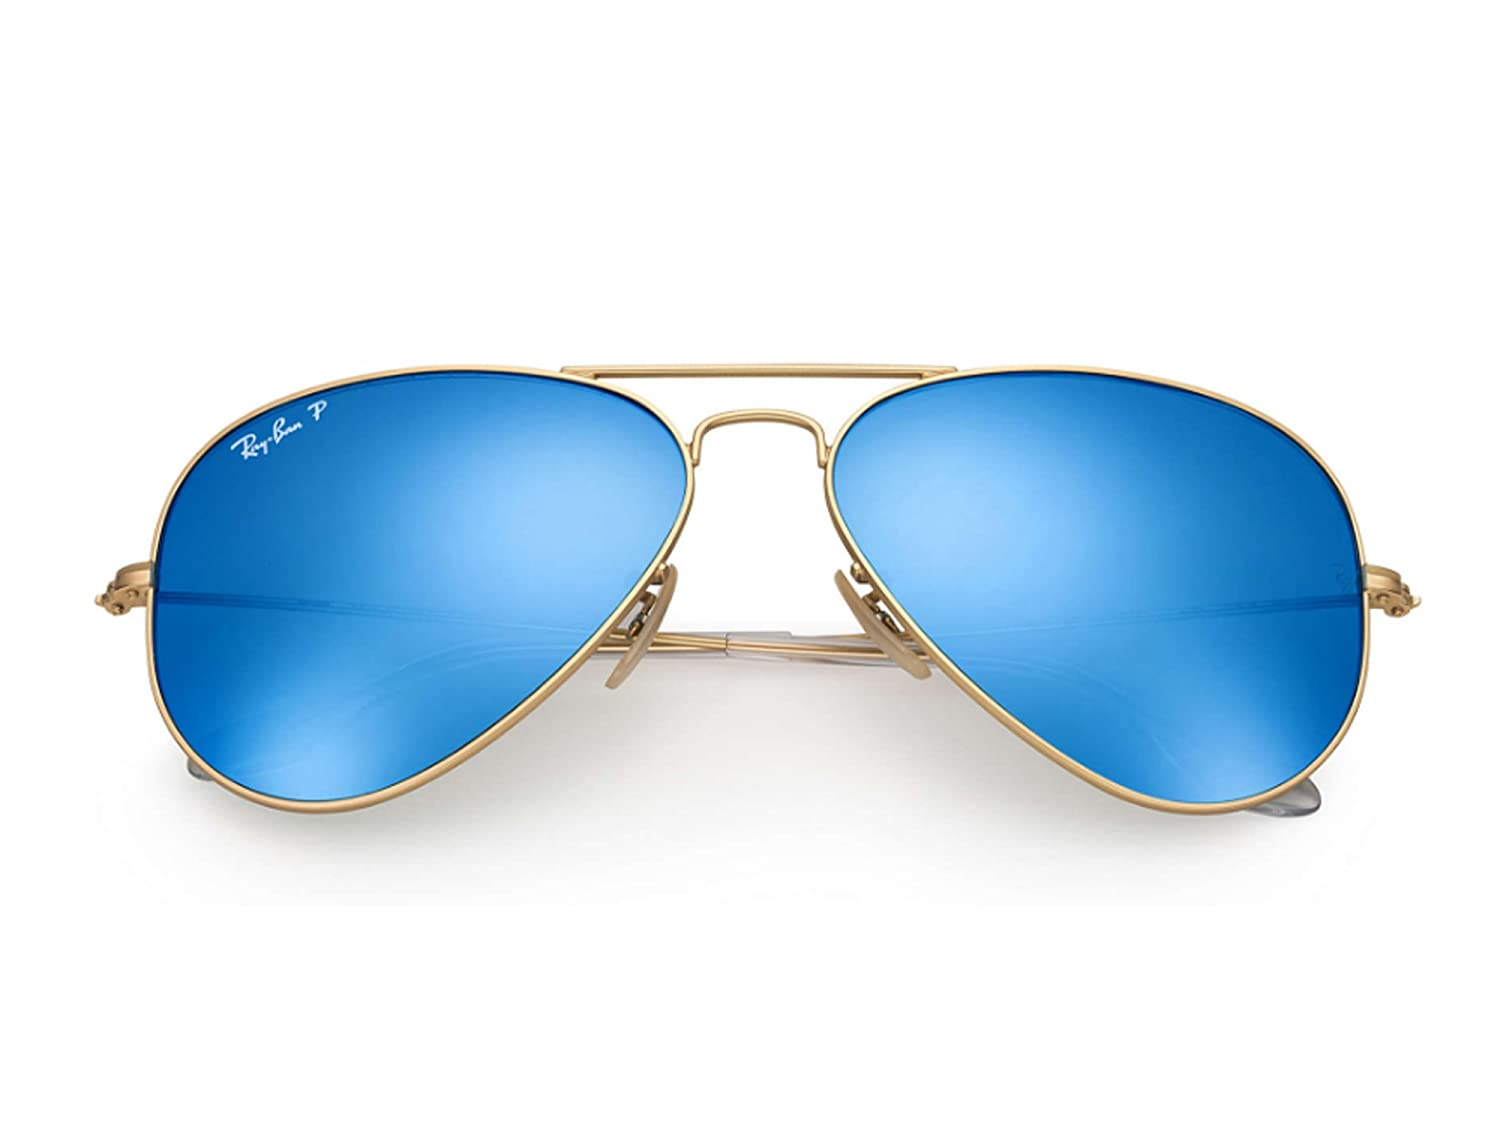 eb76052851 ... 50% off lentes de sol ray ban modelo aviator flash flash 19420 lenses aviator  rb3025